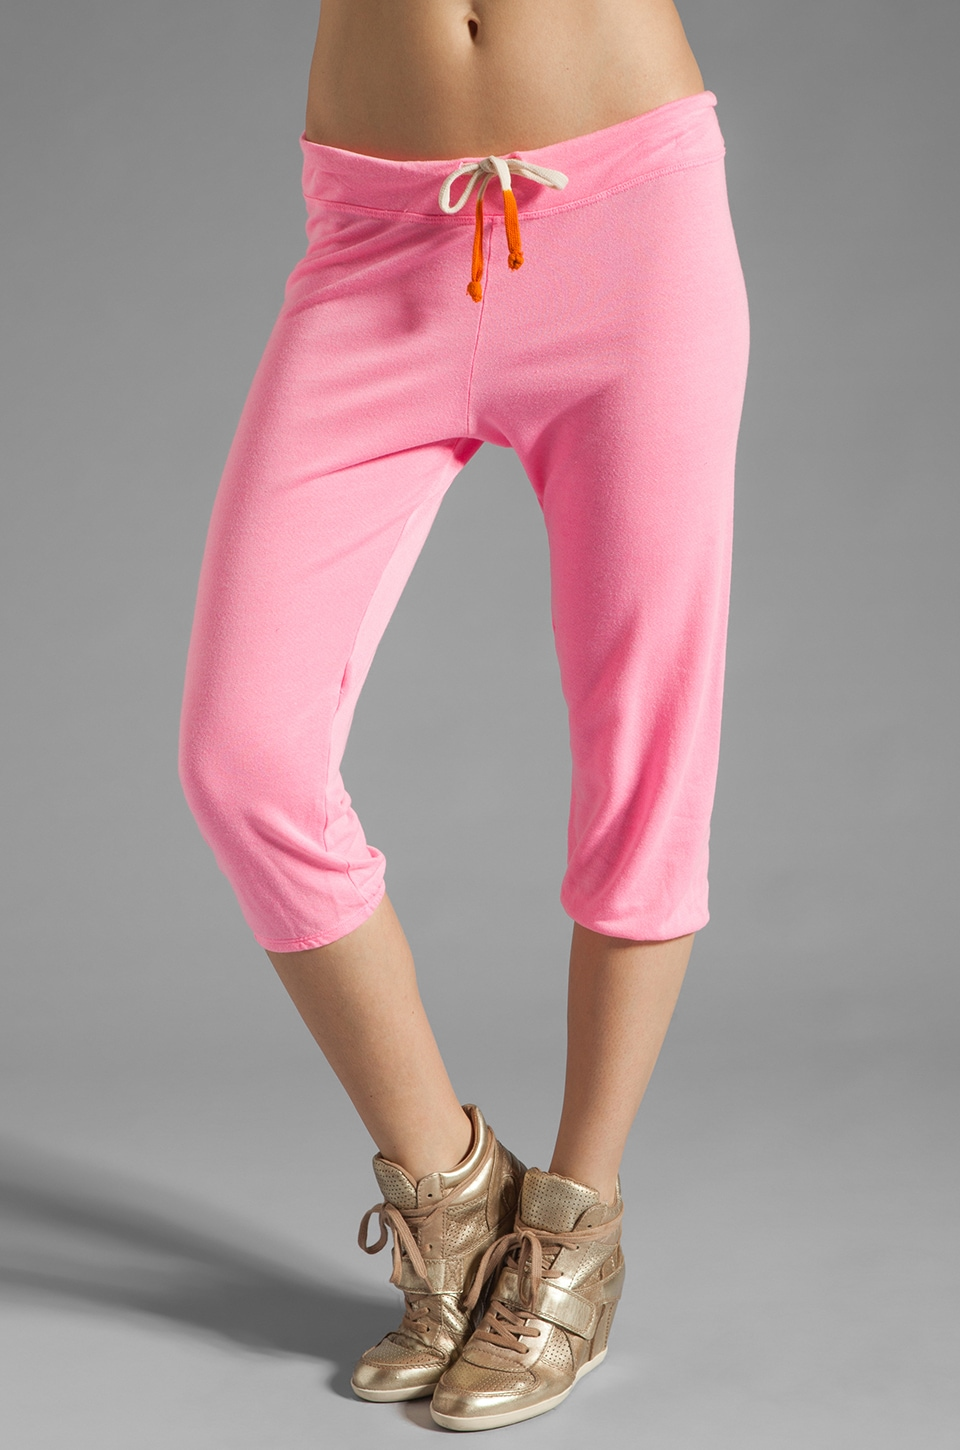 SUNDRY Light Terry Capri Pant in Neon Pink